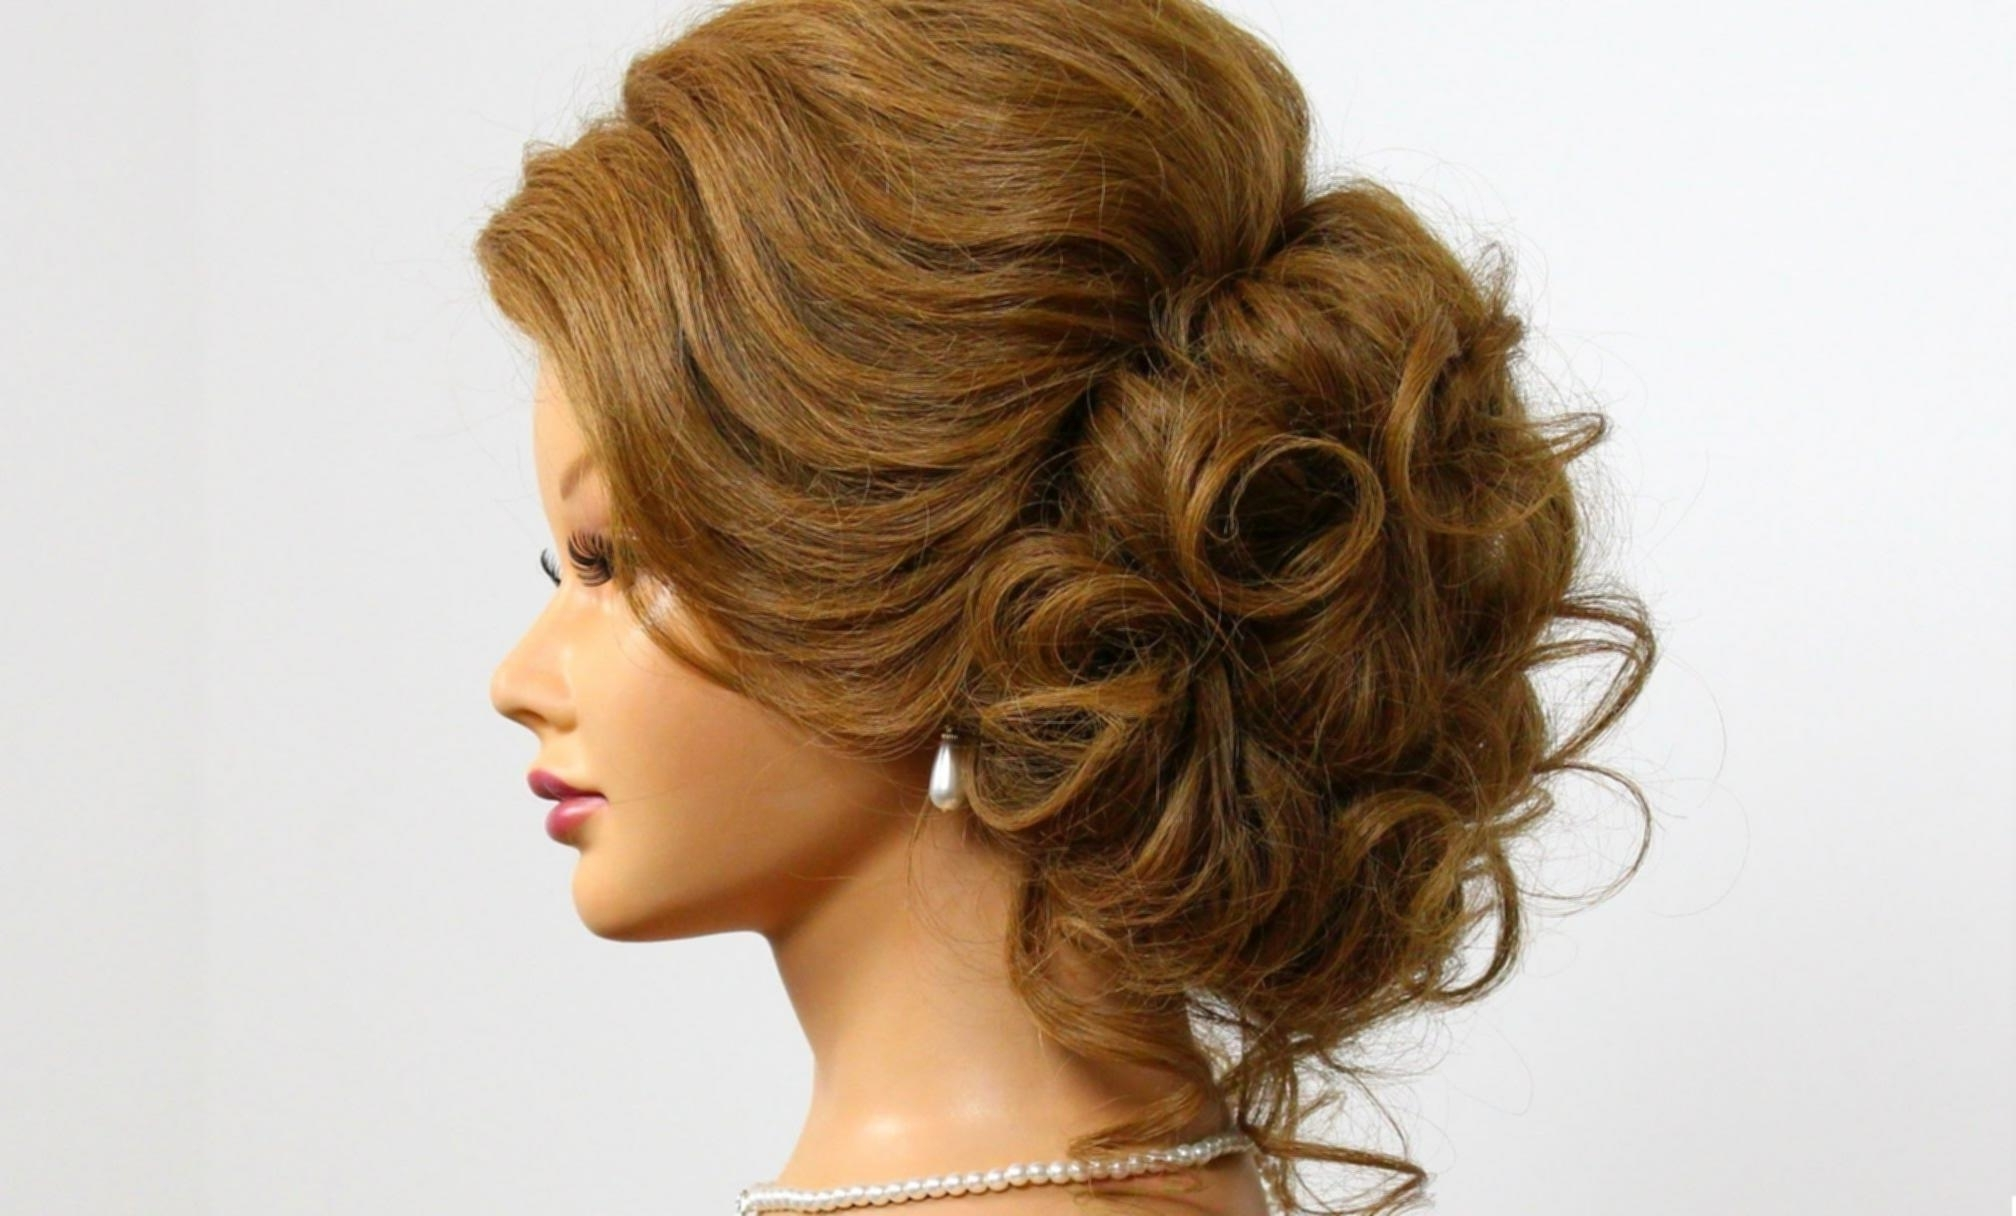 Prom Hairstyles For Medium Hair Formal Updo Hairstyles For Medium Inside Formal Updo Hairstyles For Medium Hair (View 11 of 15)